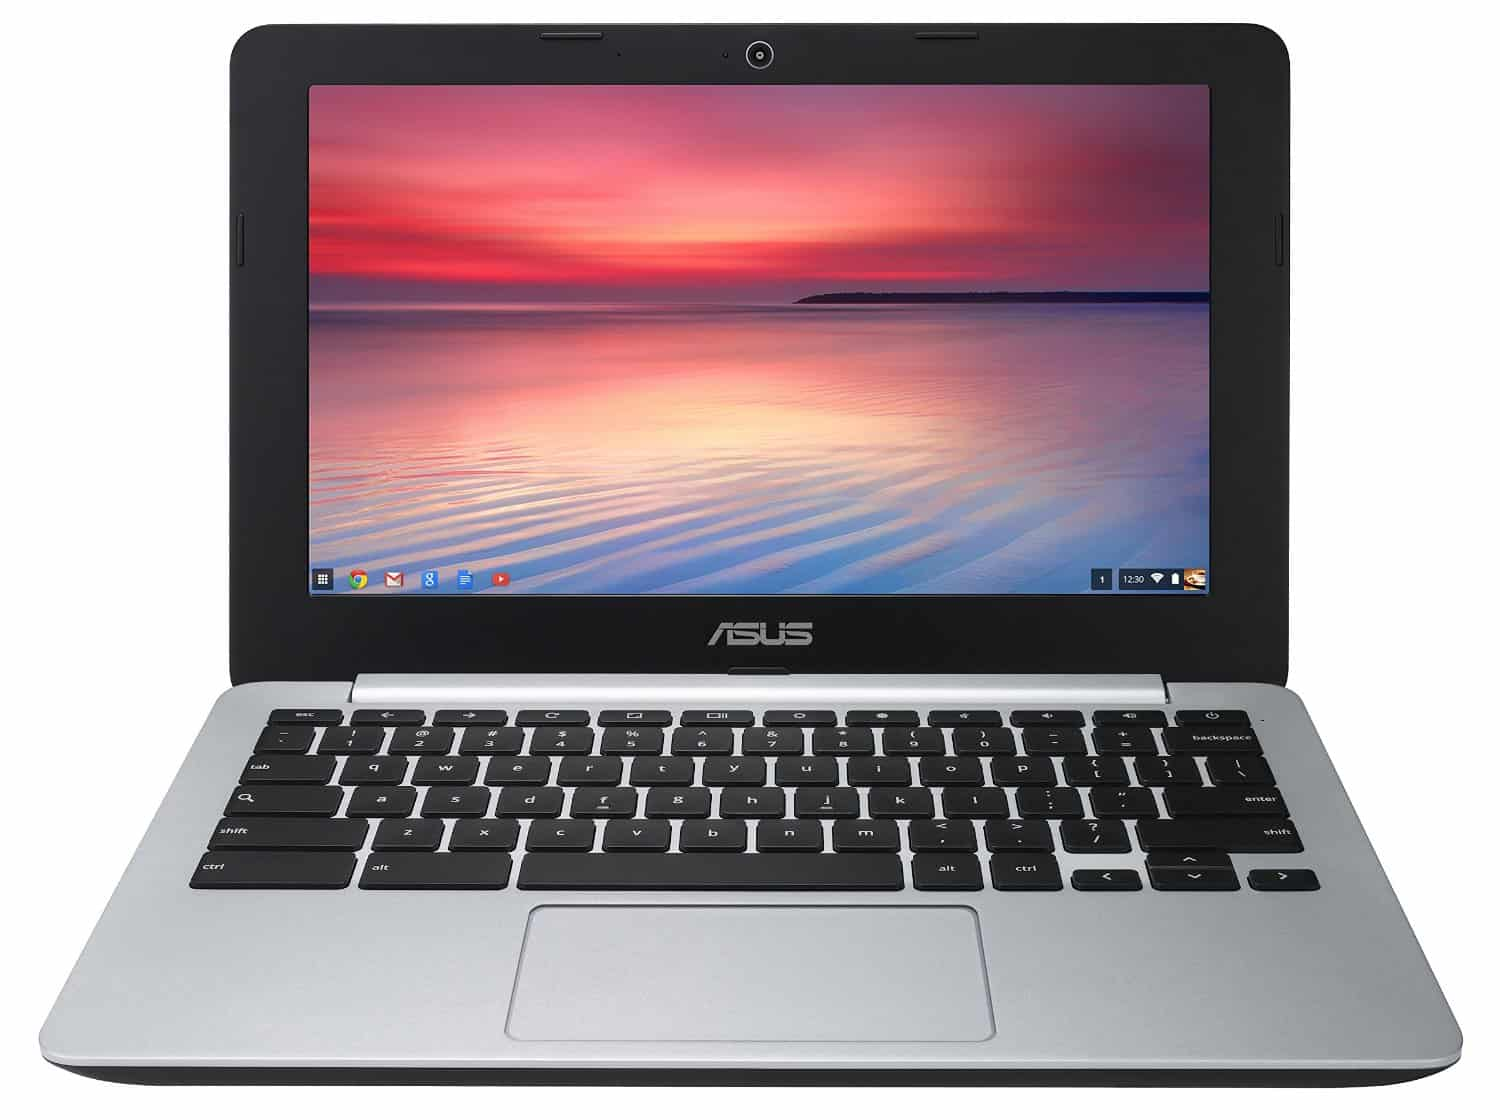 ASUS 12-inch Chromebook